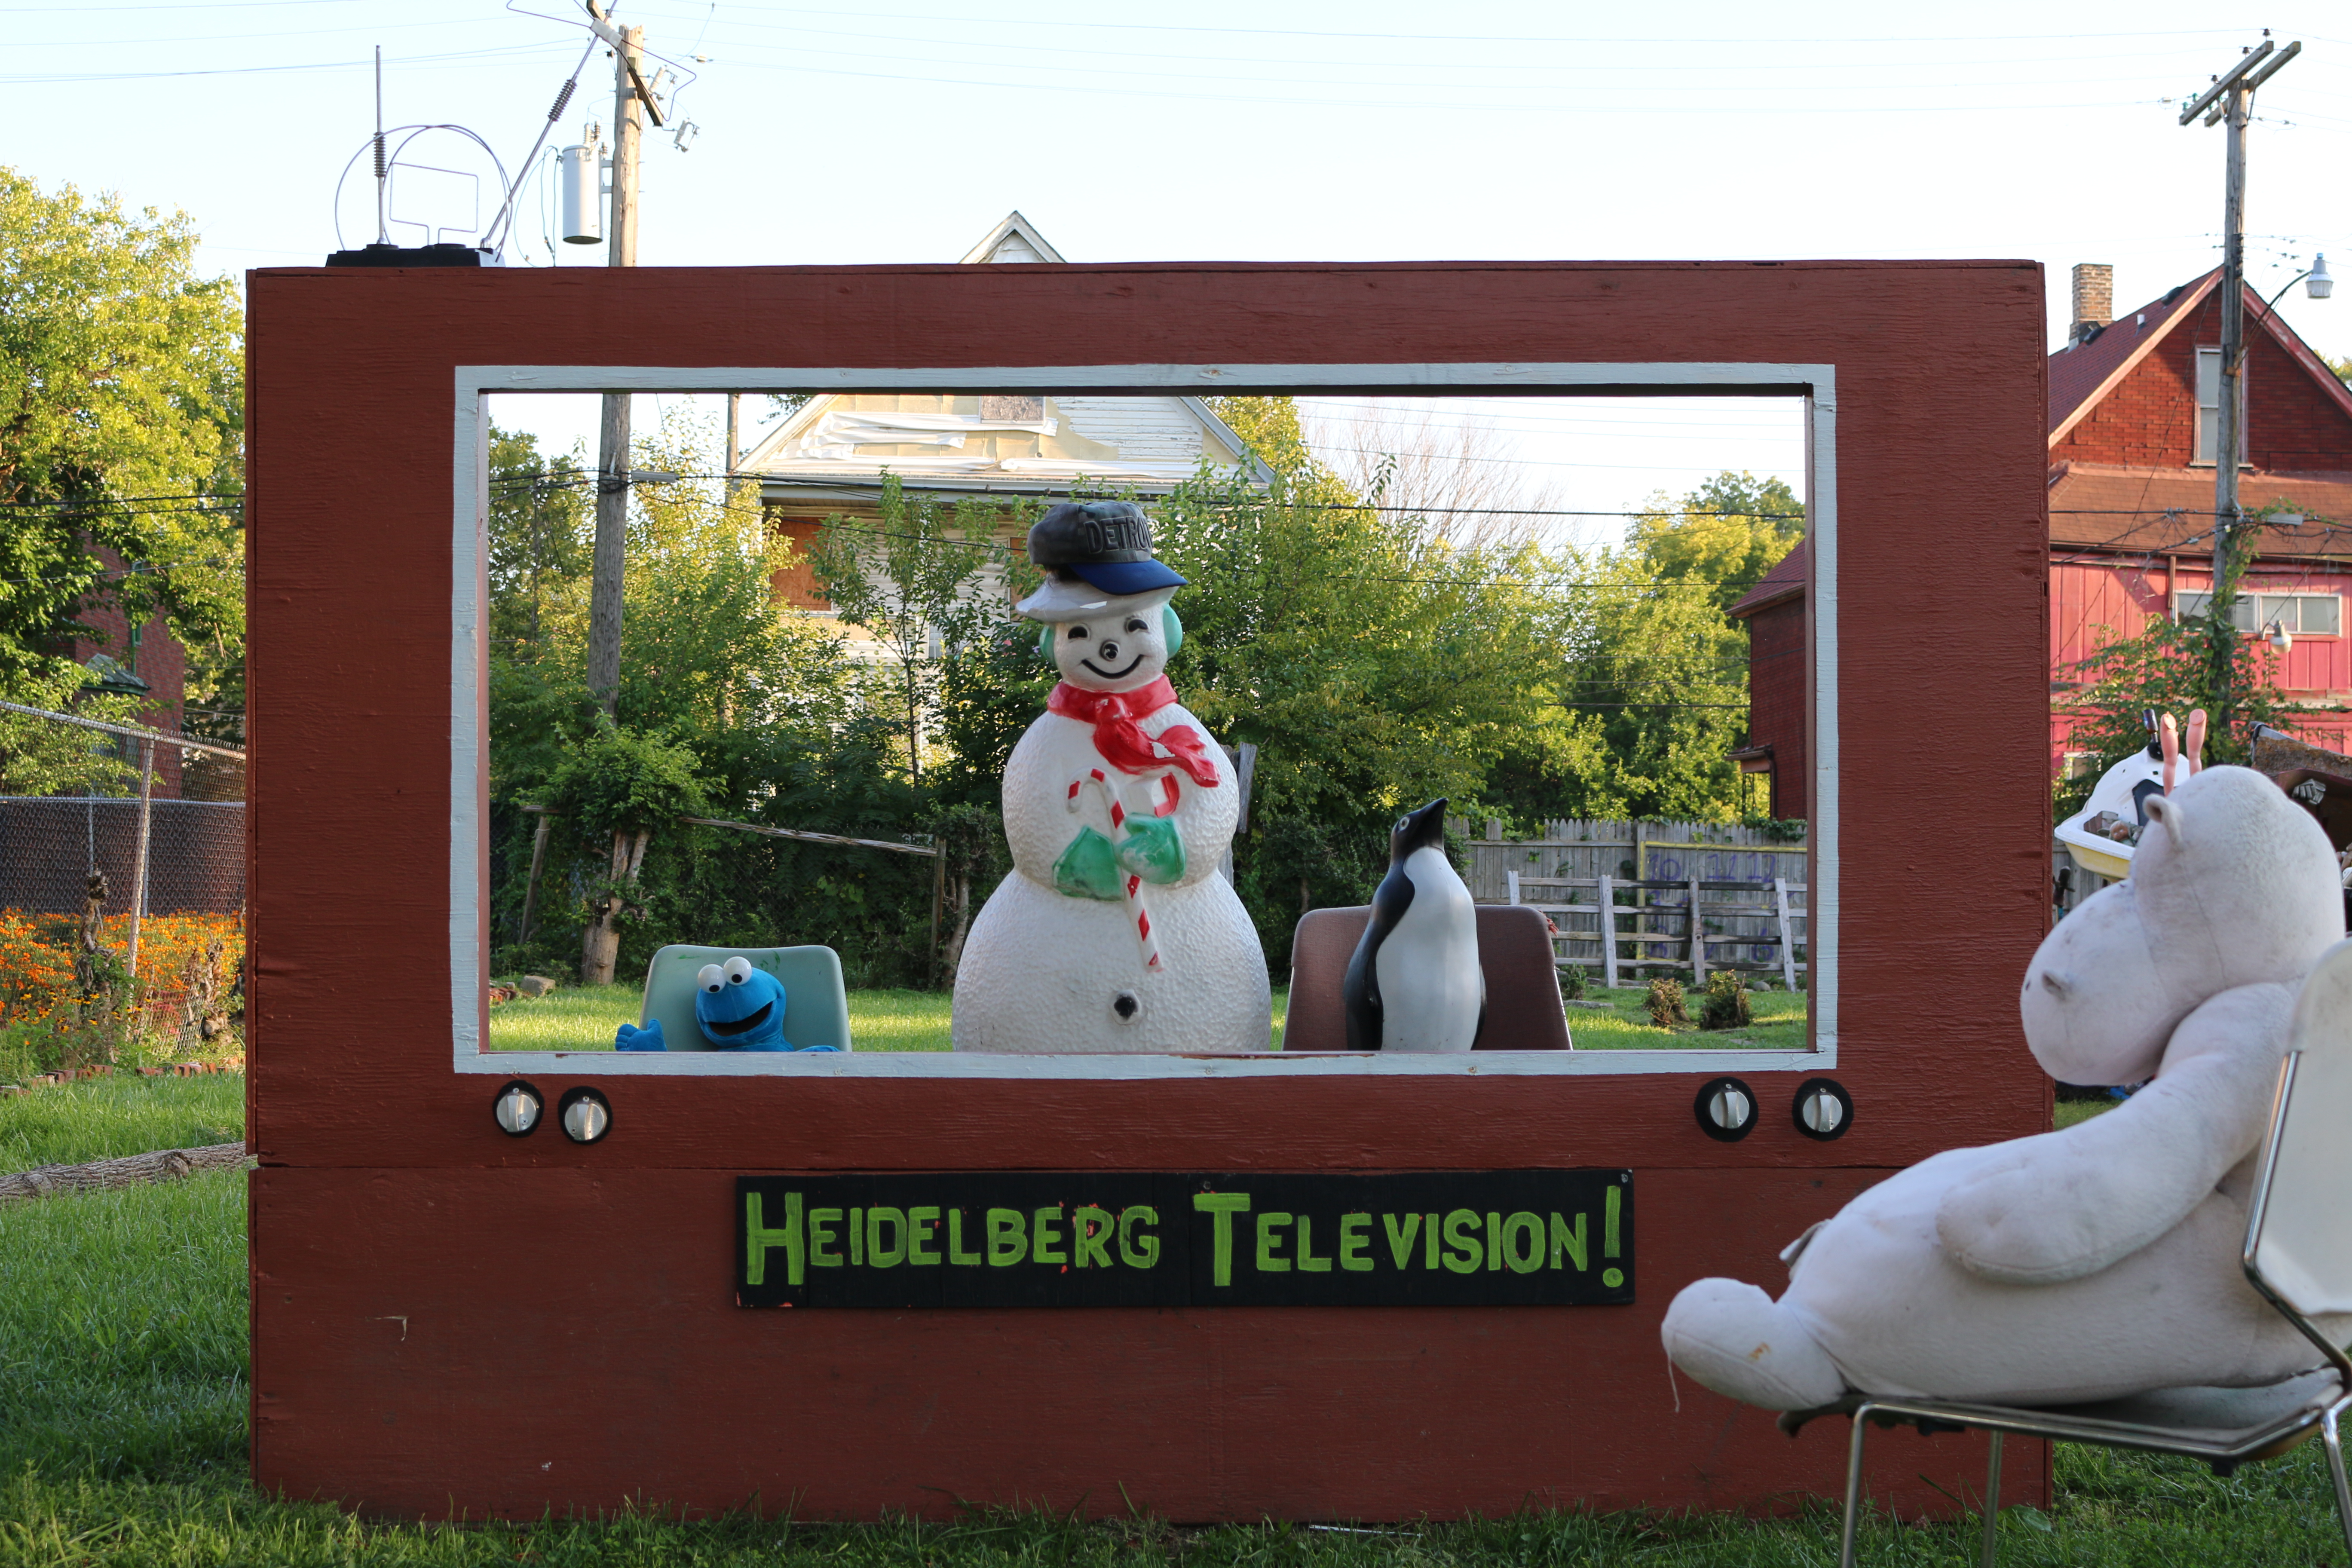 White snowman toy inside read wooden frame with stuffed hippo watching and blocked letters saying Heidelberg Television.